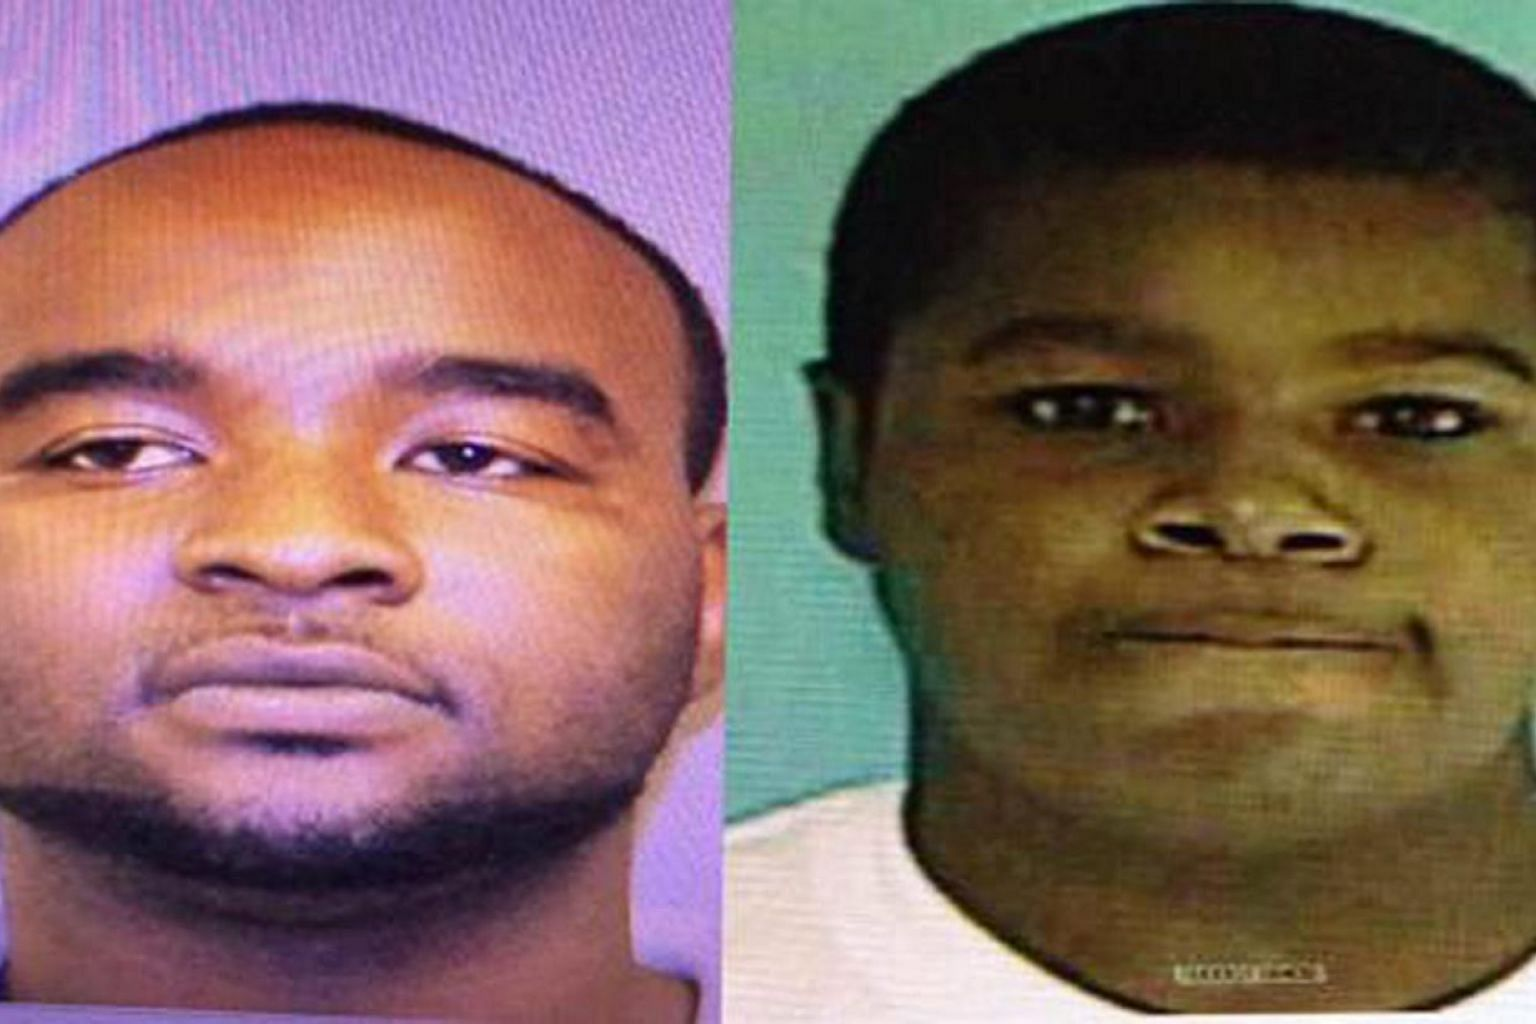 A handout combo image released by the Oxford Police Department on May 9, 2015, shows Curtis Banks (left) and Marvin Banks who are being sought in connection with the murder of two police officers during a traffic stop in Hattiesburg, Mississippi